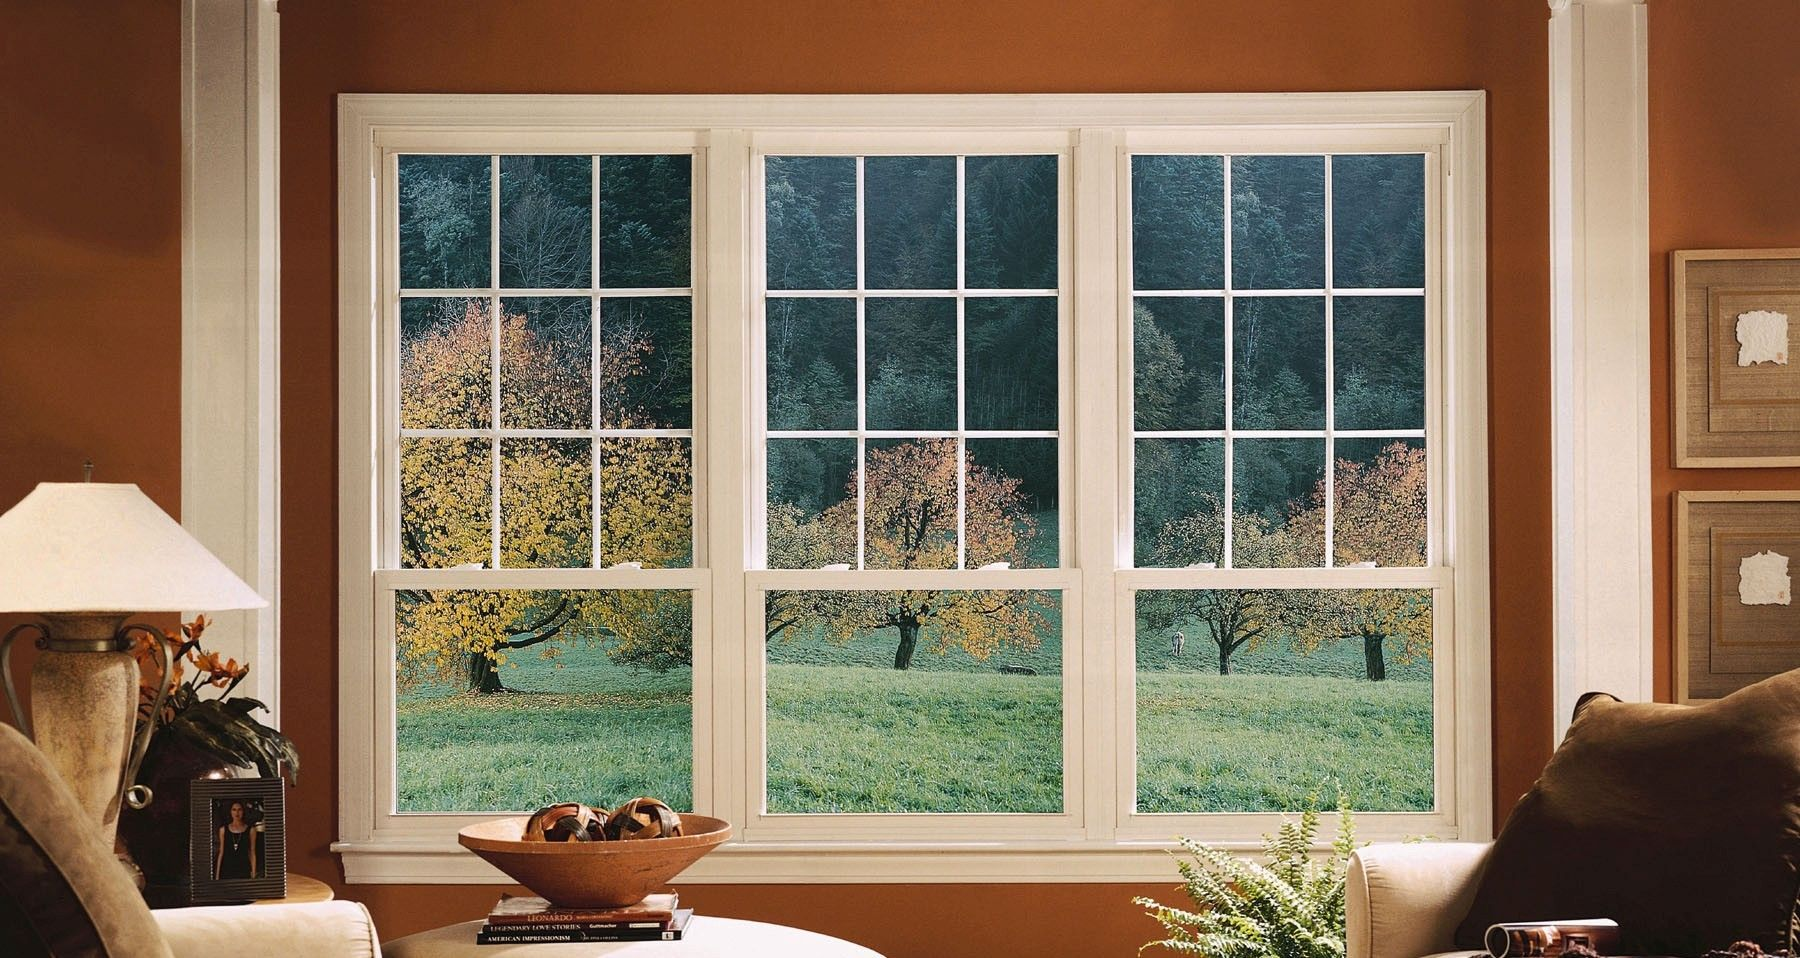 House wooden window design  wood windows replacement kbhome  new house ideas  pinterest